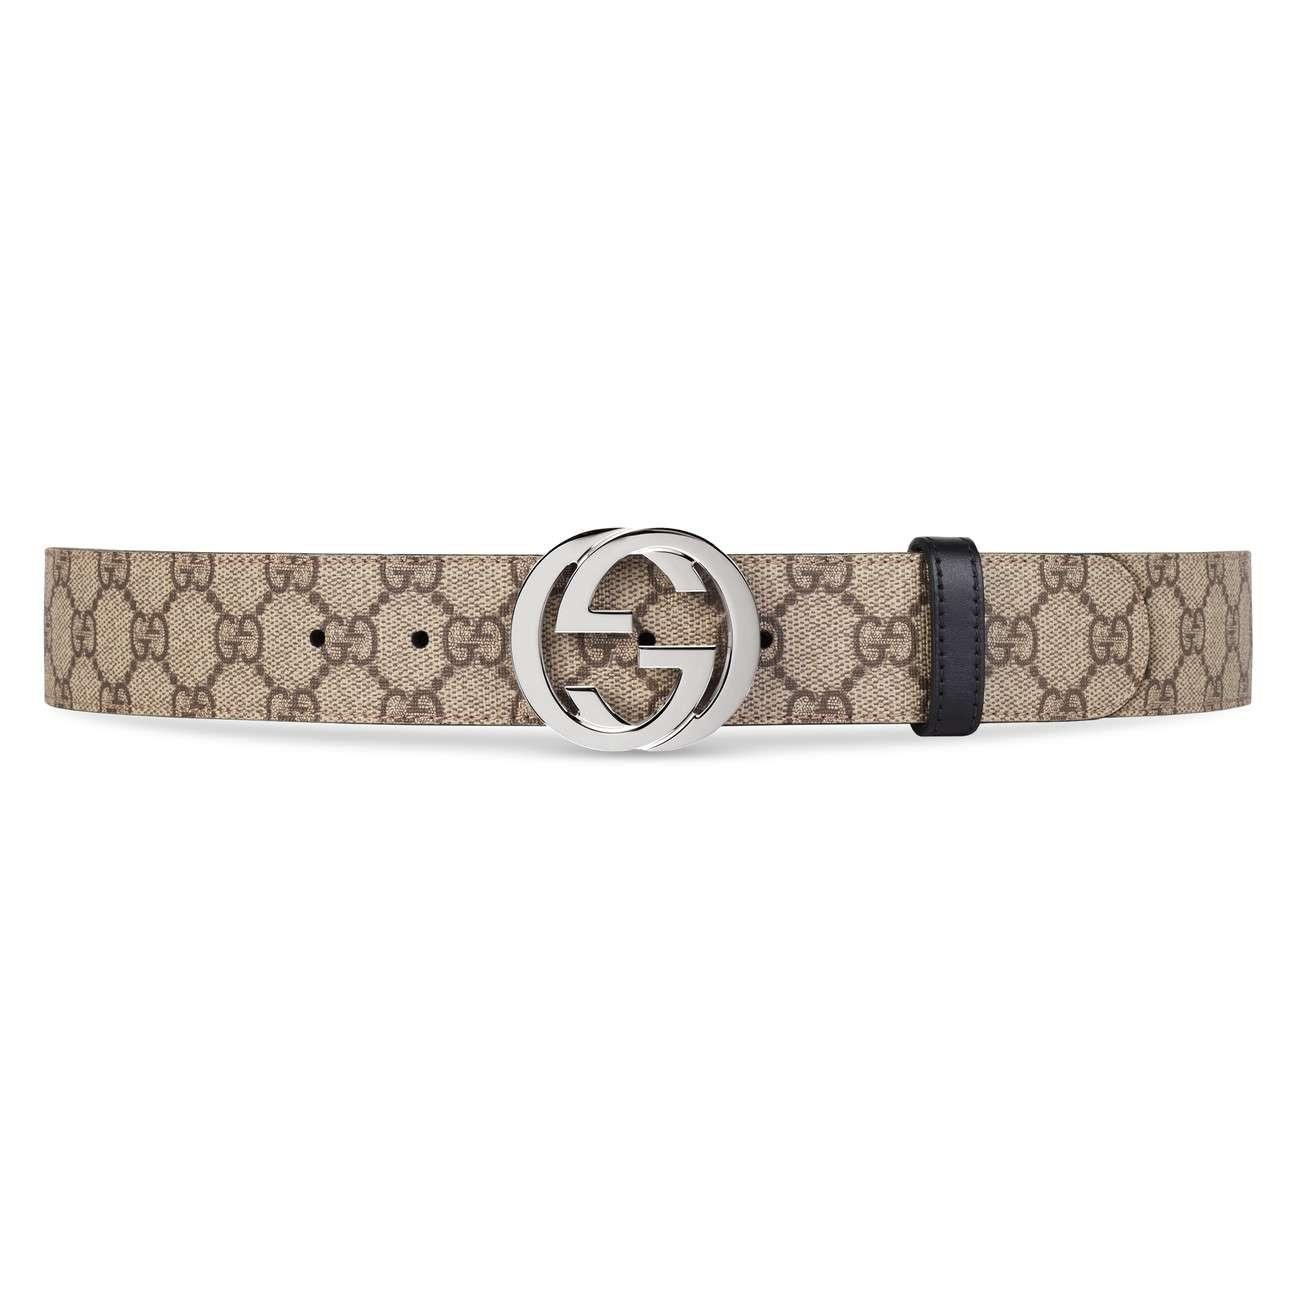 3b61e6ba007 Lyst - Gucci Reversible GG Supreme Belt in Black for Men